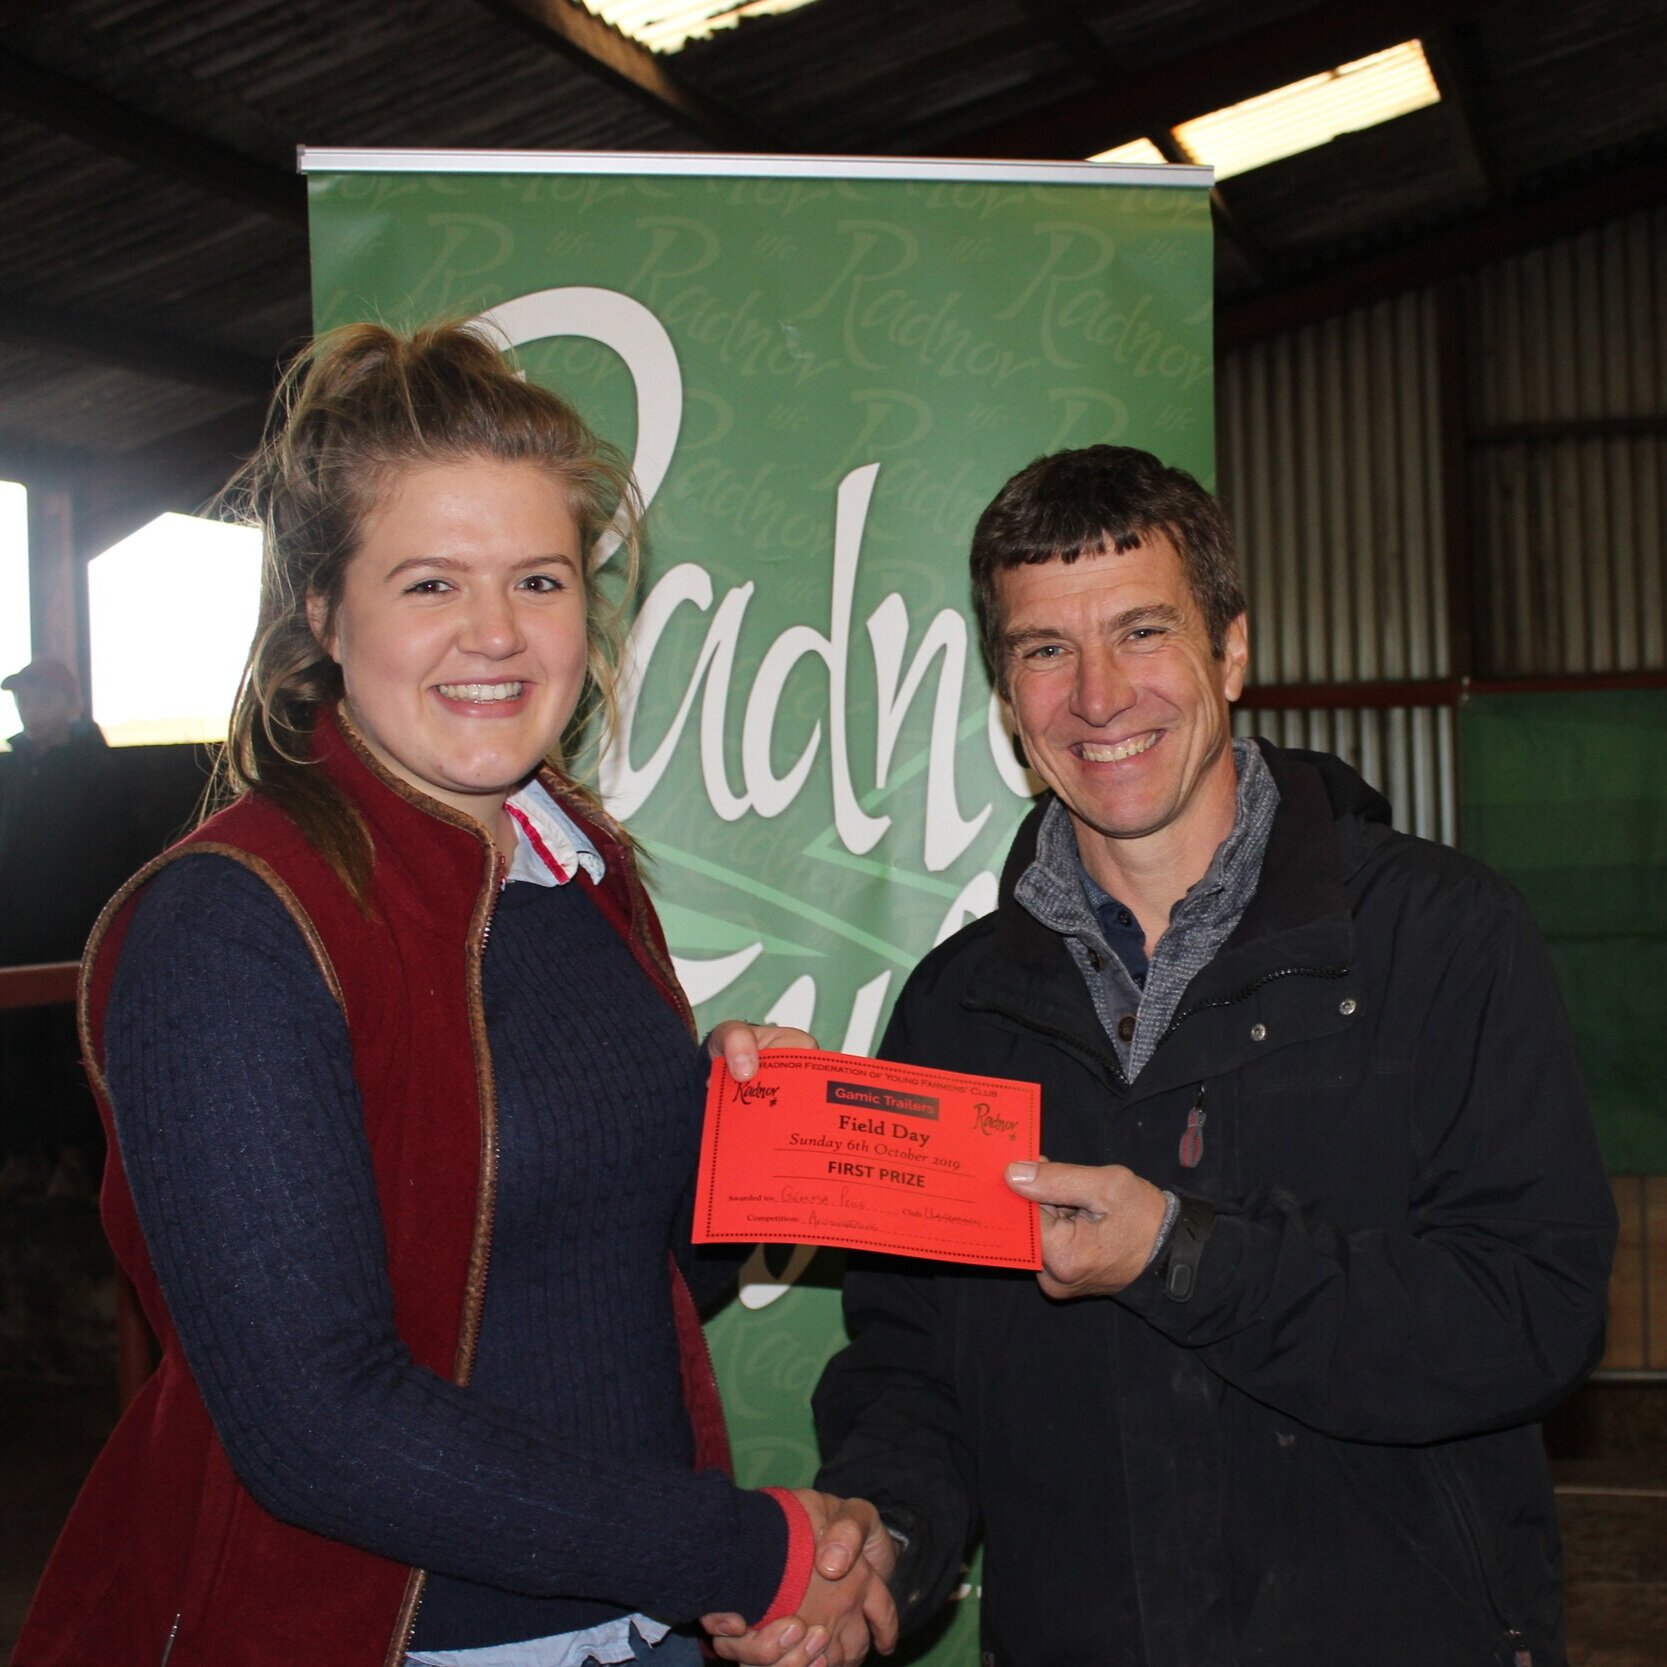 Gemma Price, Llanbadarn Fynydd YFC - 1st place in the Auctioneering competition with Mark Watson.